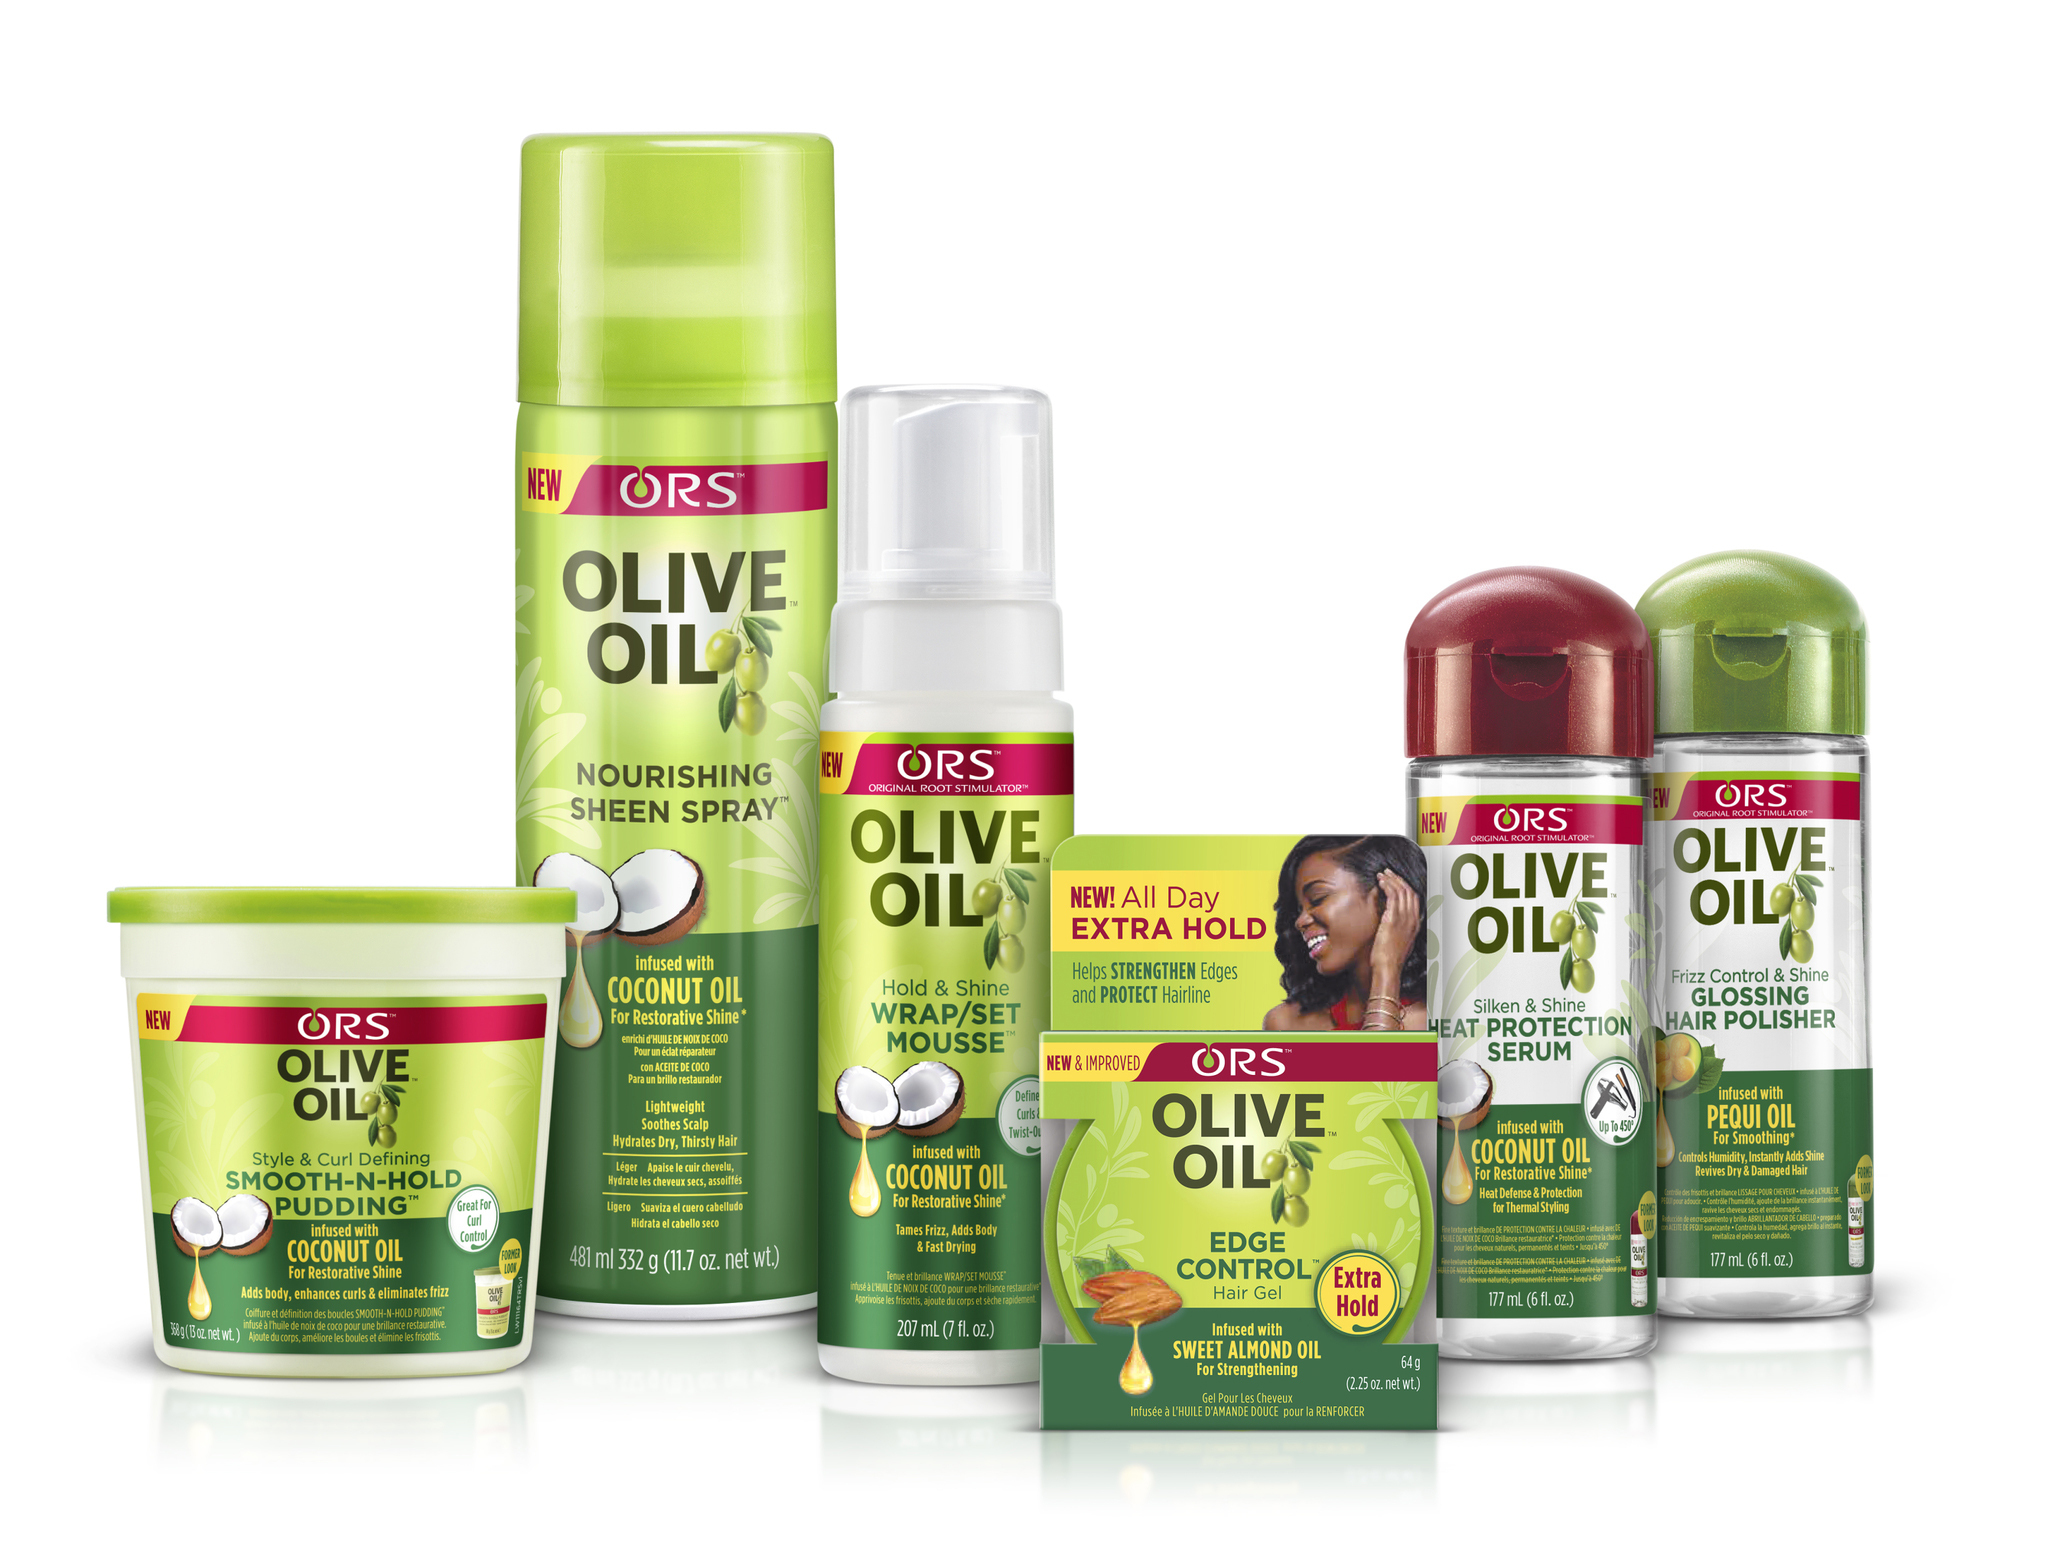 haircare expert ors™ updates its iconic olive oil collection